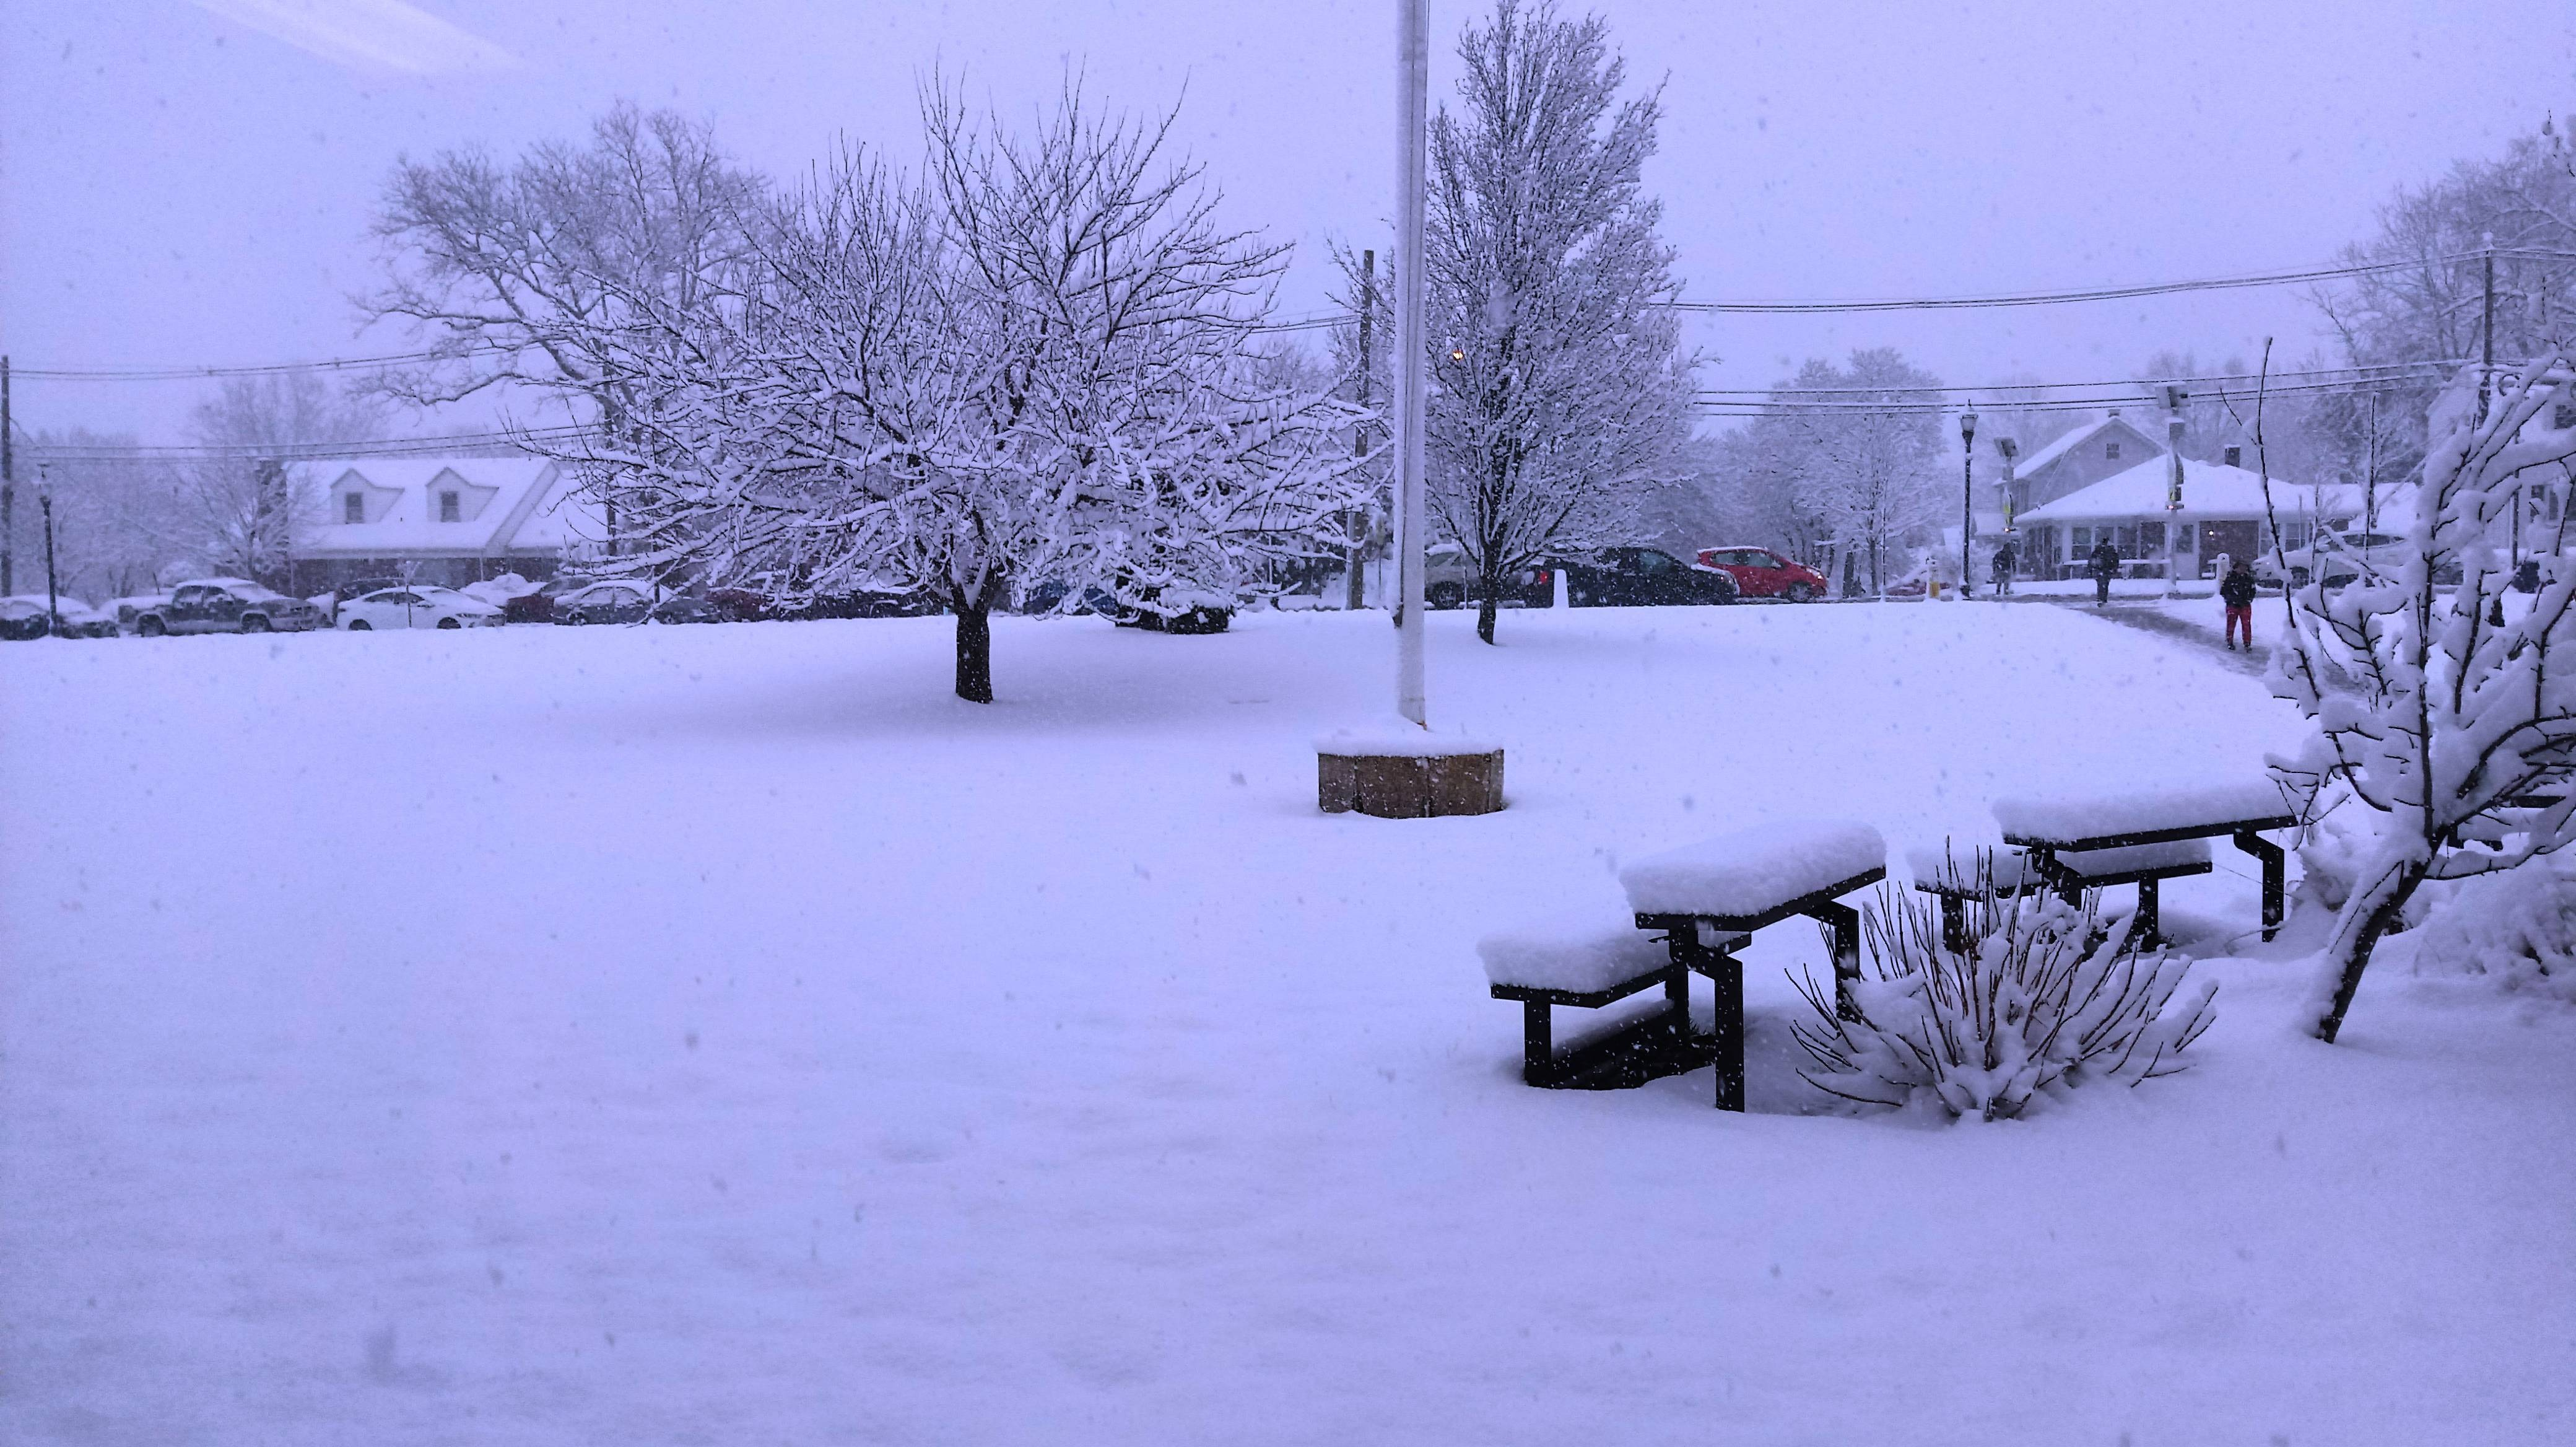 dc2d99fa6cc0afc418f8_HHHS_front_lawn_in_snow.jpg